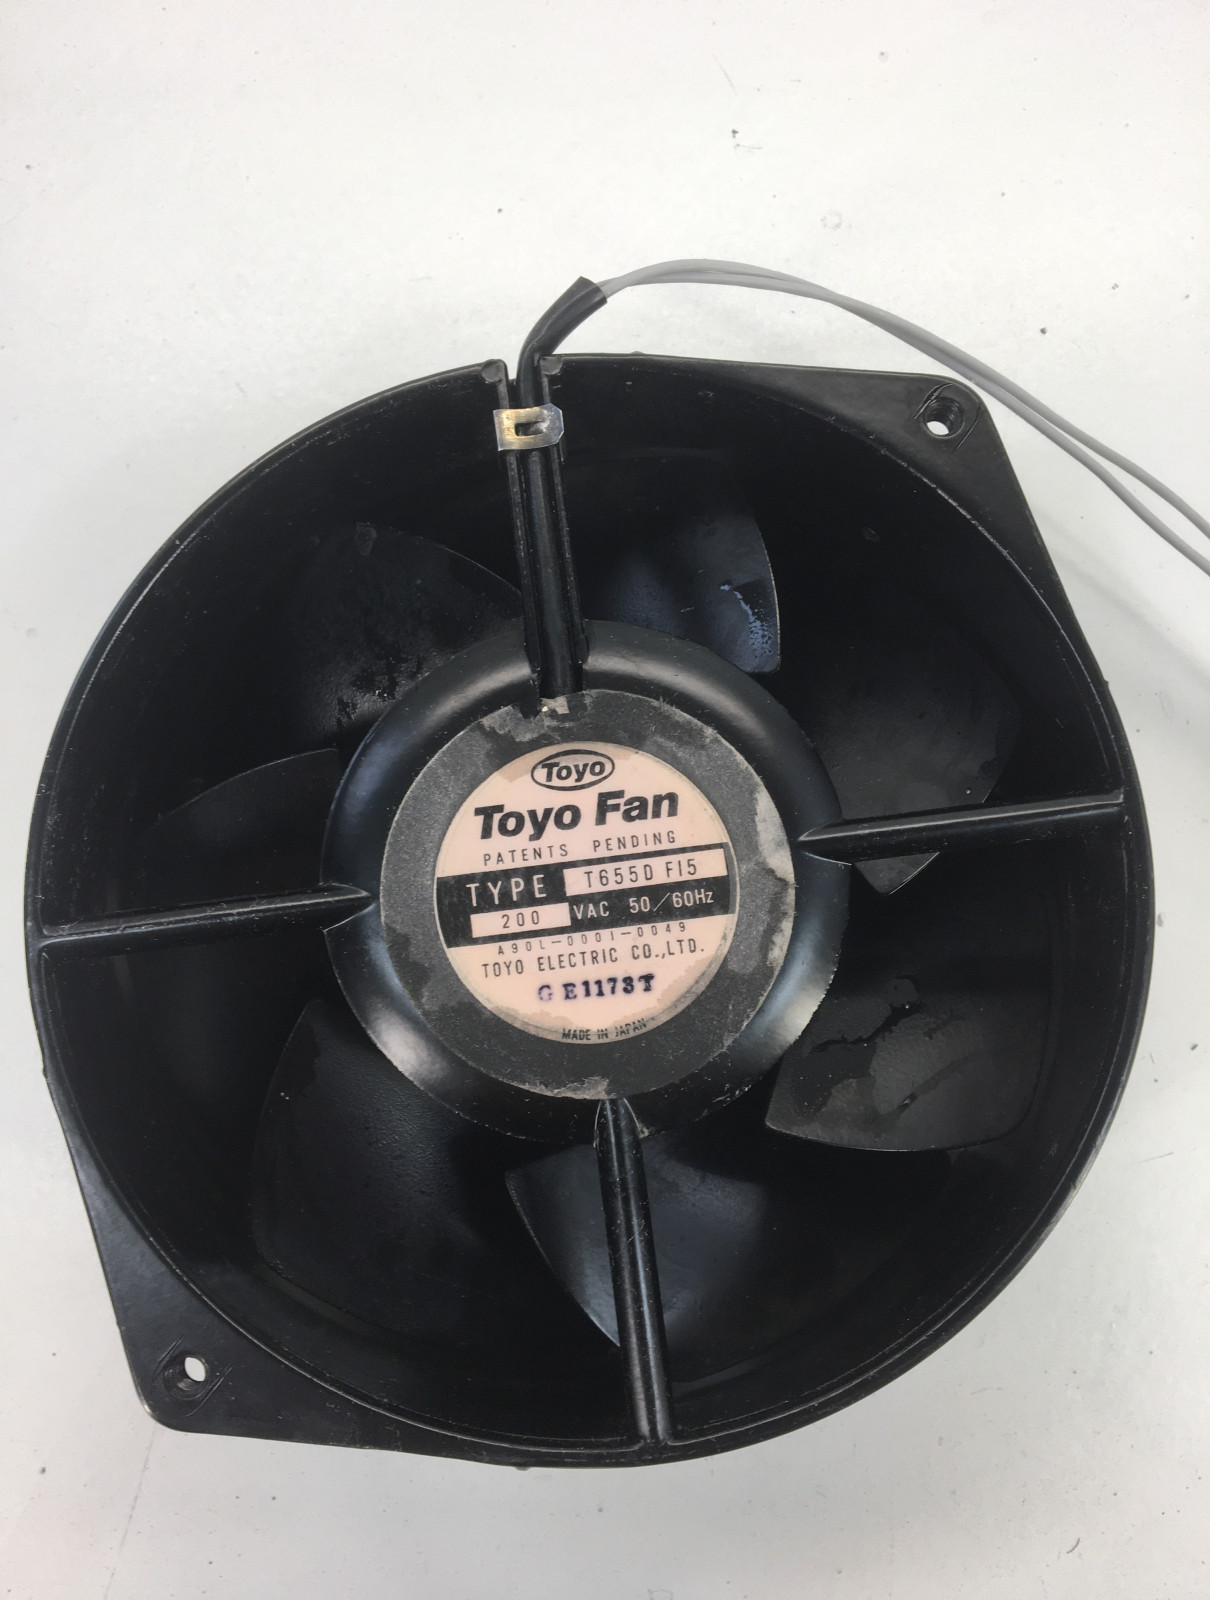 Toyo Fan type T655D F15 200VAC